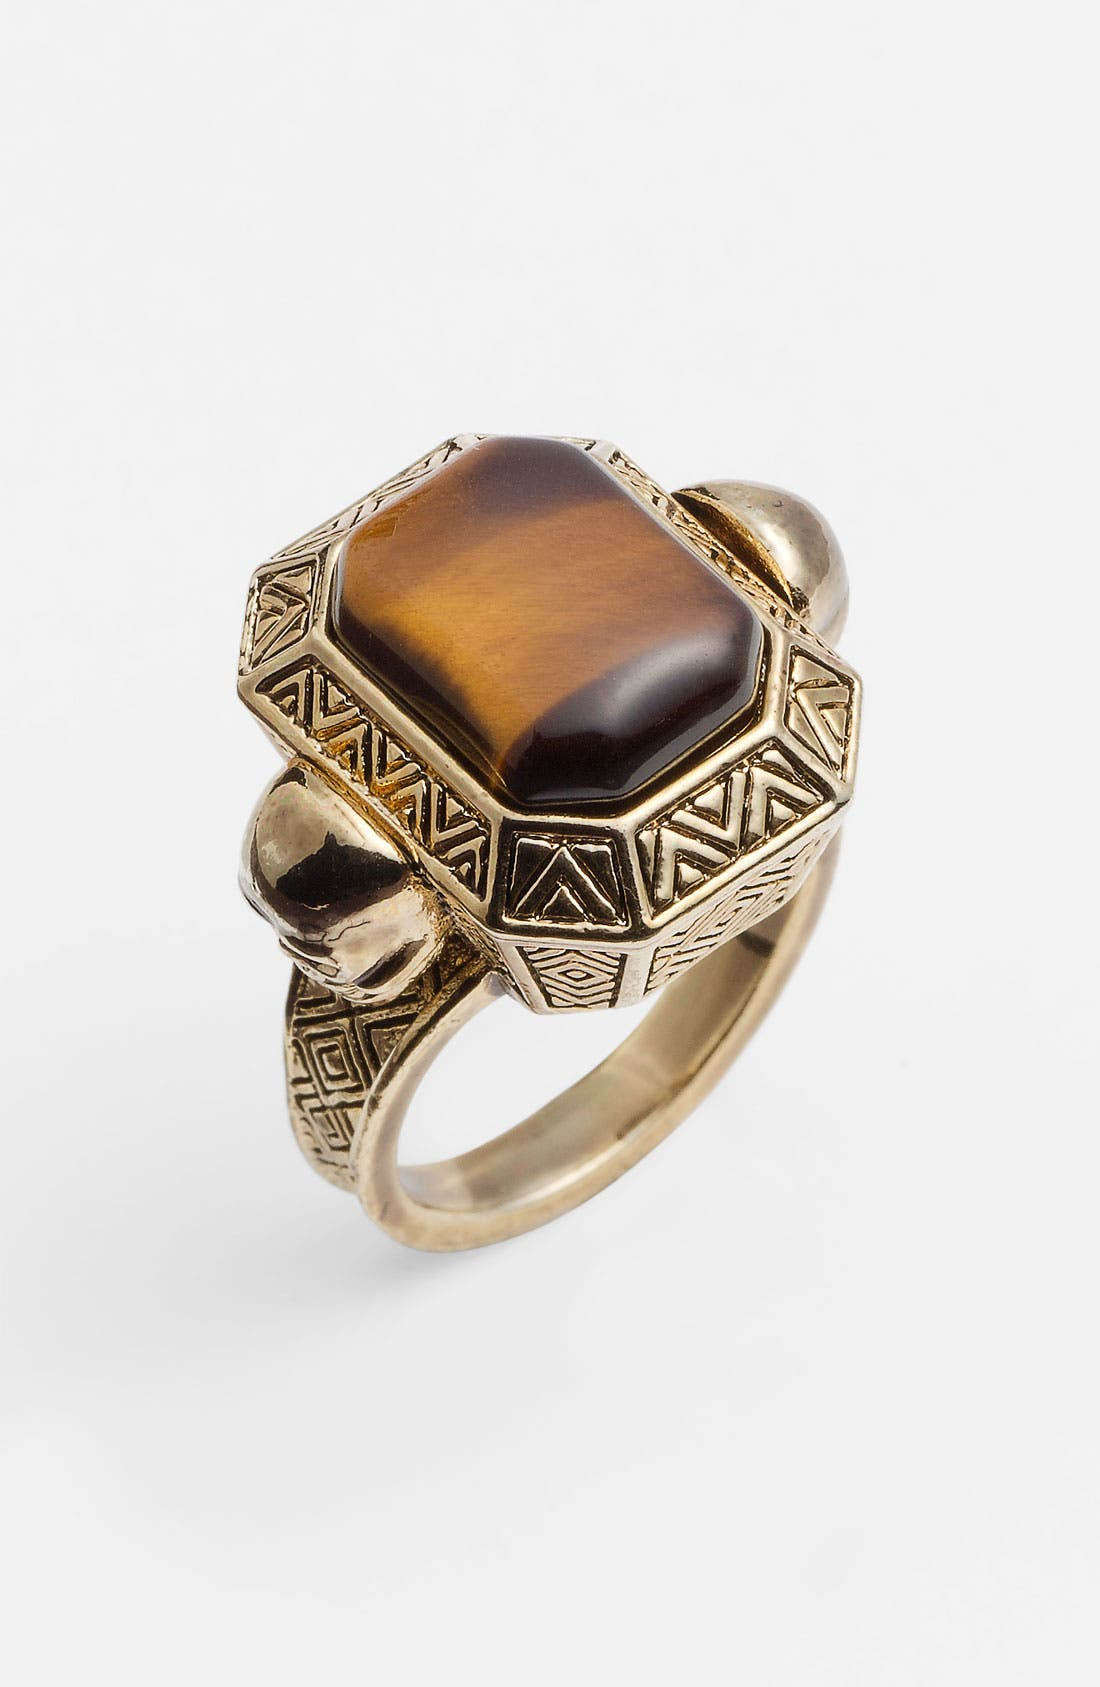 Engraved Skull Tiger's Eye Cocktail Ring,                         Main,                         color, Gold/ Tigers Eye